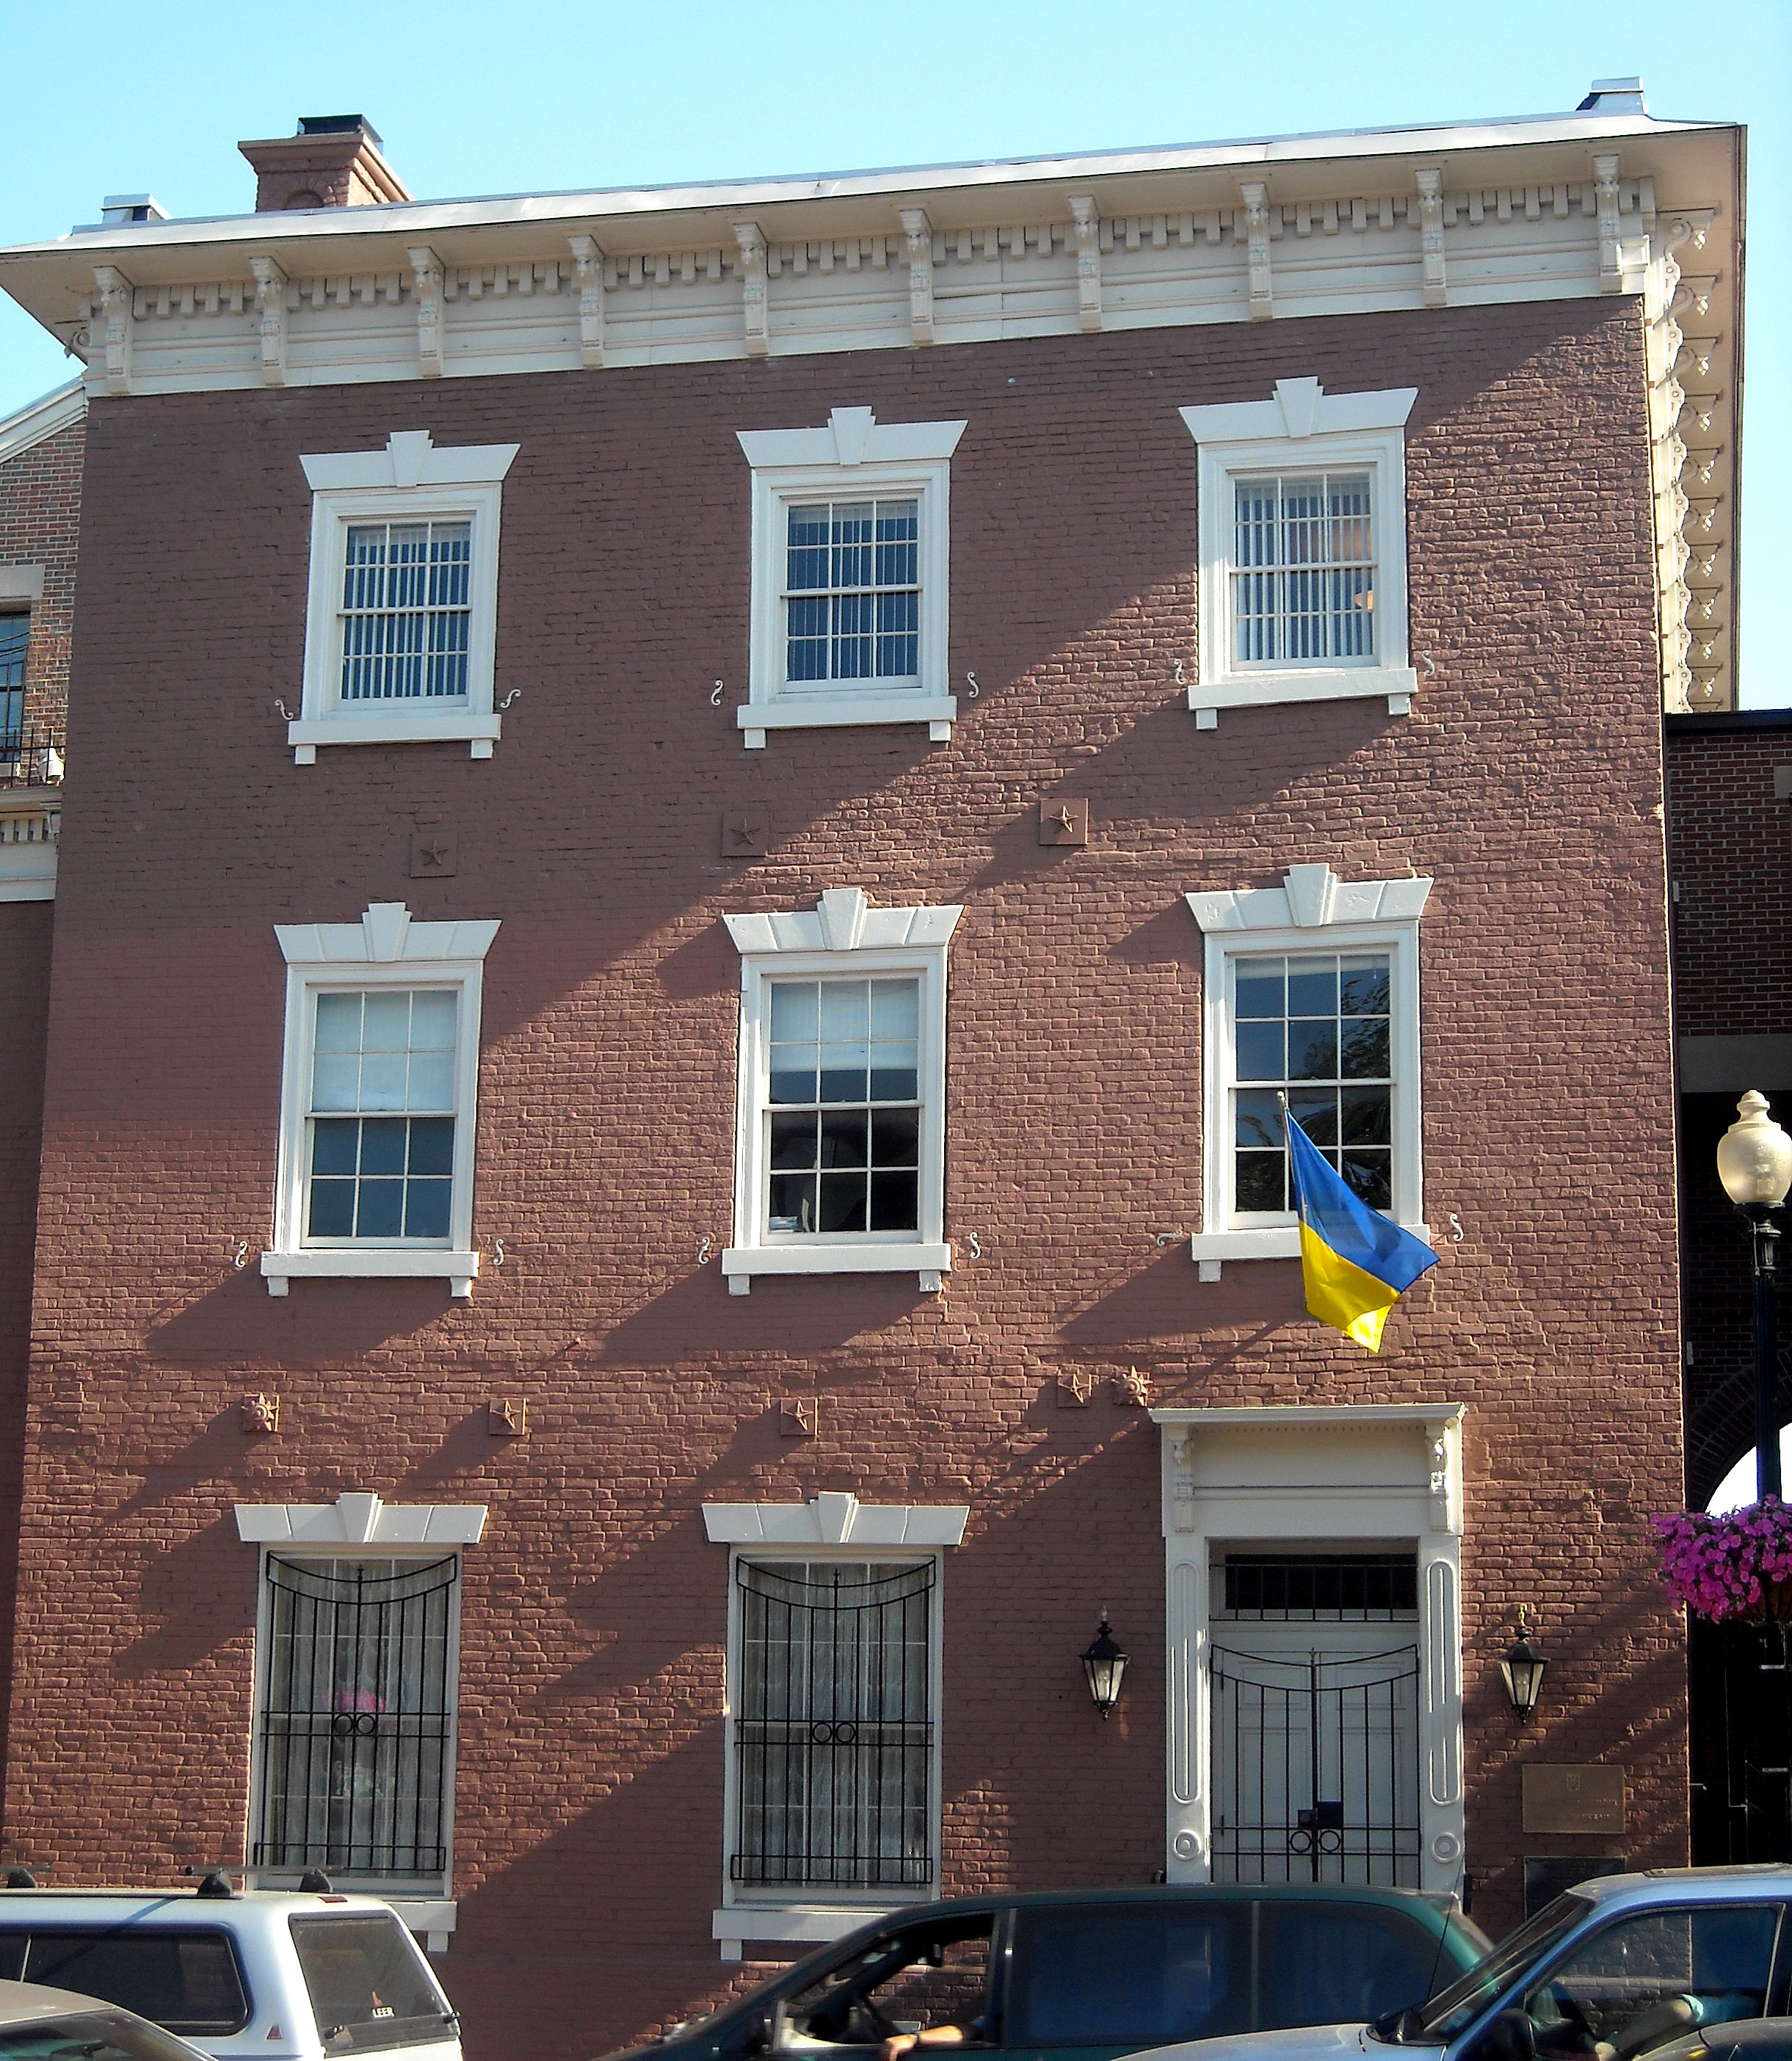 The building in 2008, as the Embassy of the Ukraine ((AgnosticPreachersKid at English Wikipedia [CC BY-SA 3.0 (http://creativecommons.org/licenses/by-sa/3.0) or GFDL (http://www.gnu.org/copyleft/fdl.html)], via Wikimedia Commons))